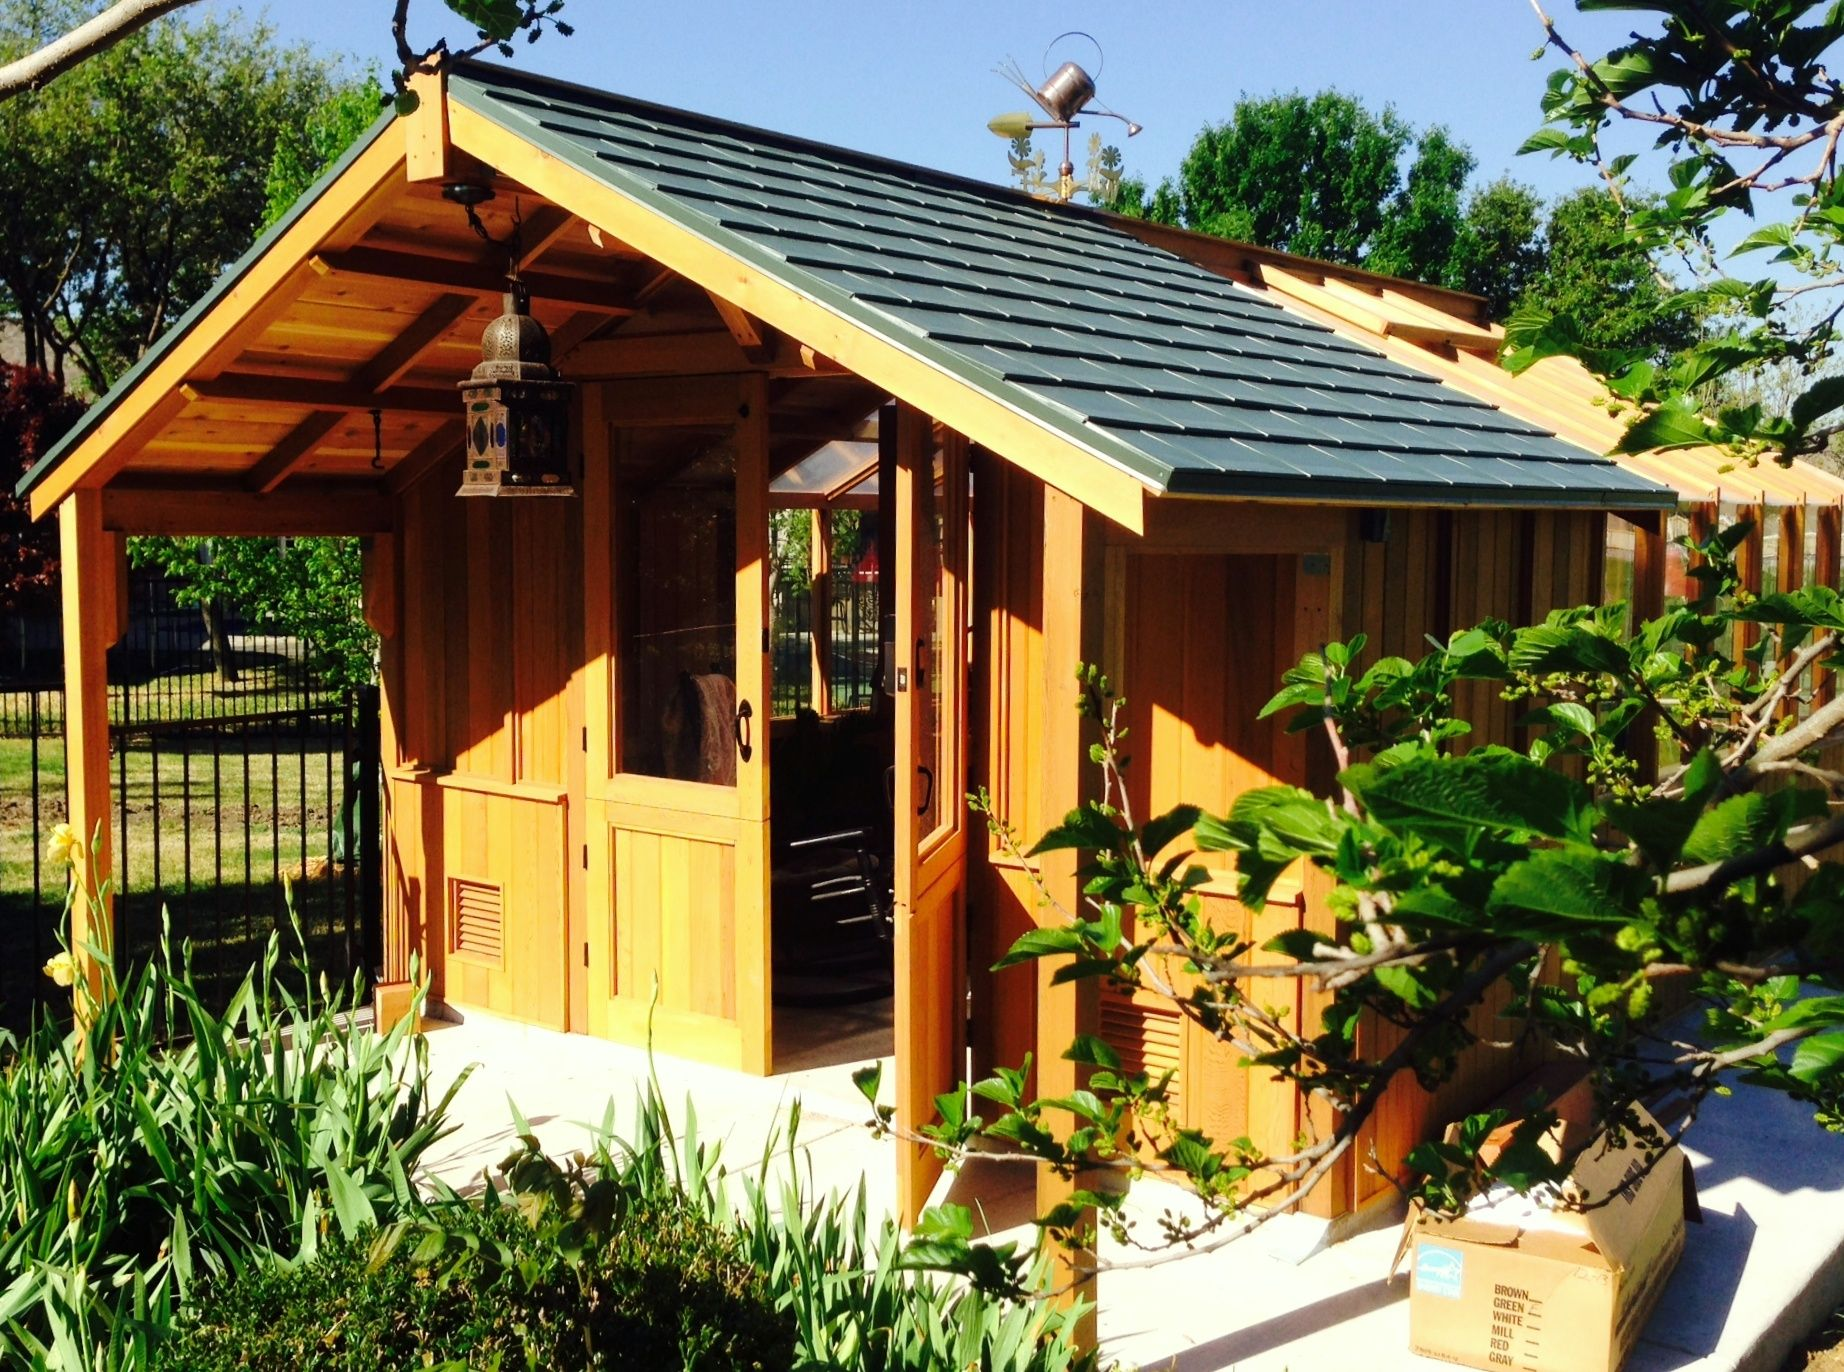 stylish garden shed greenhouse impressive garden shed greenhouse cedar kits - Garden Sheds With Greenhouse